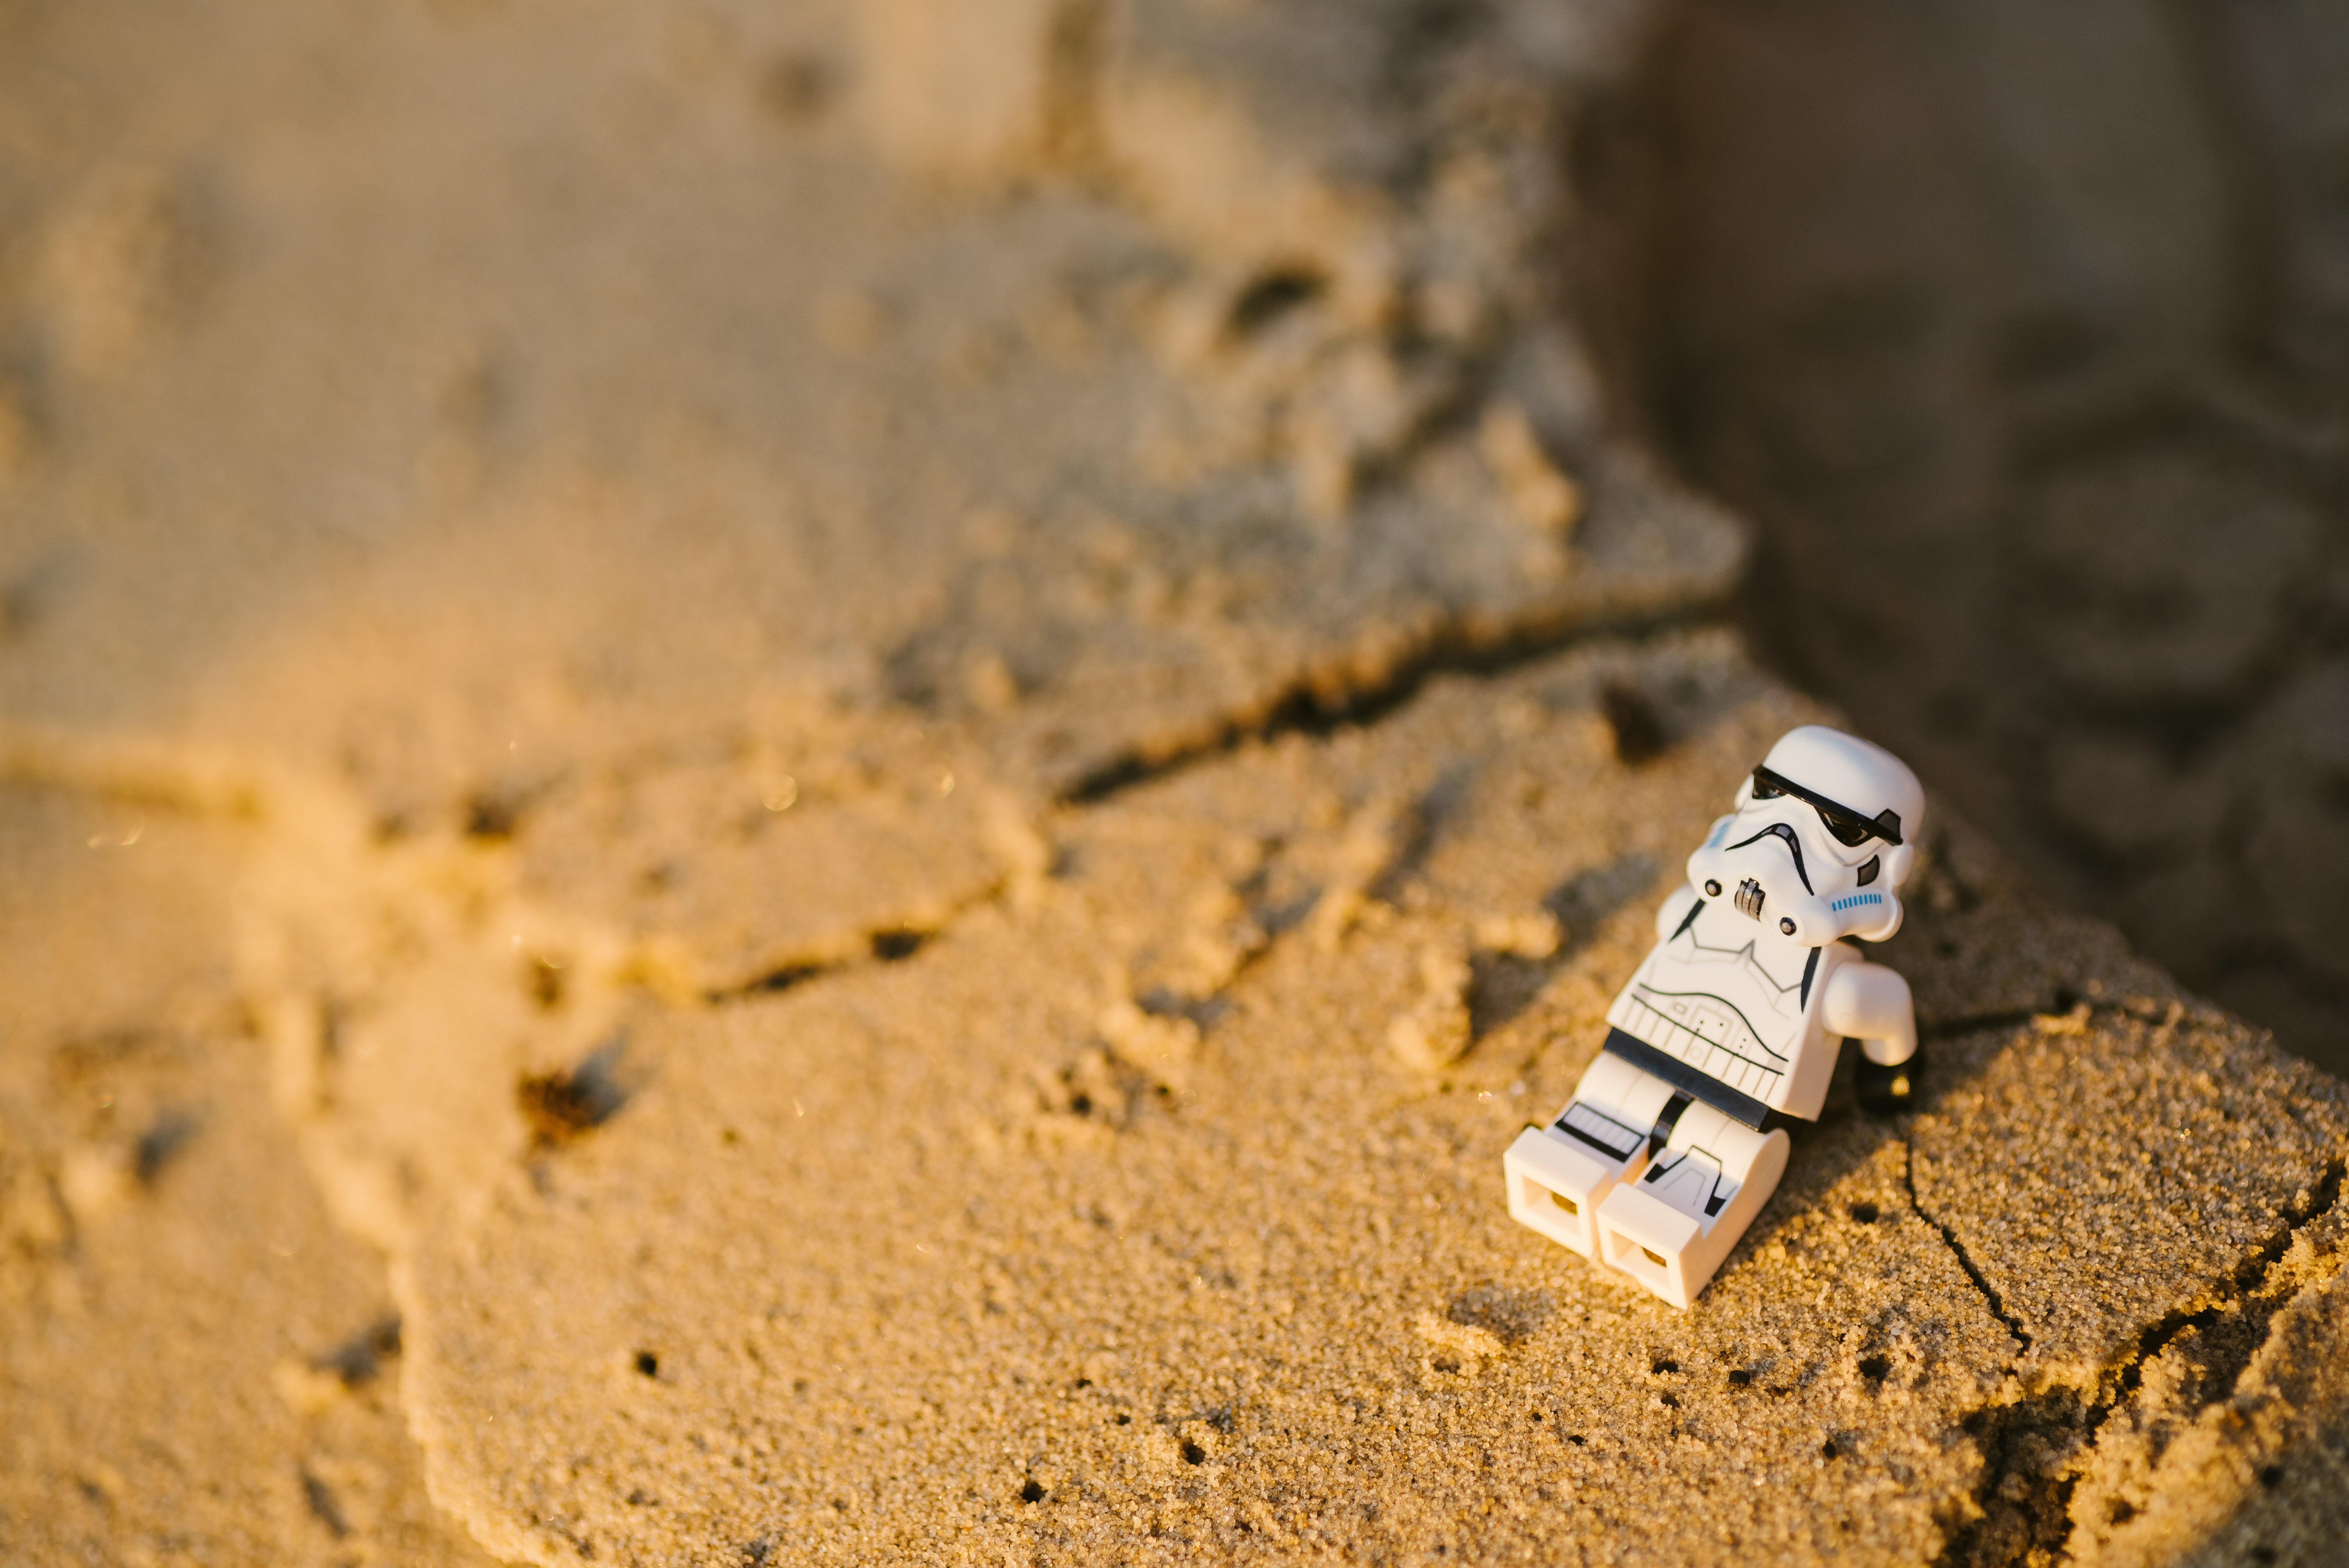 selective focus photography of Star Wars Stormtropper minifigure on sand